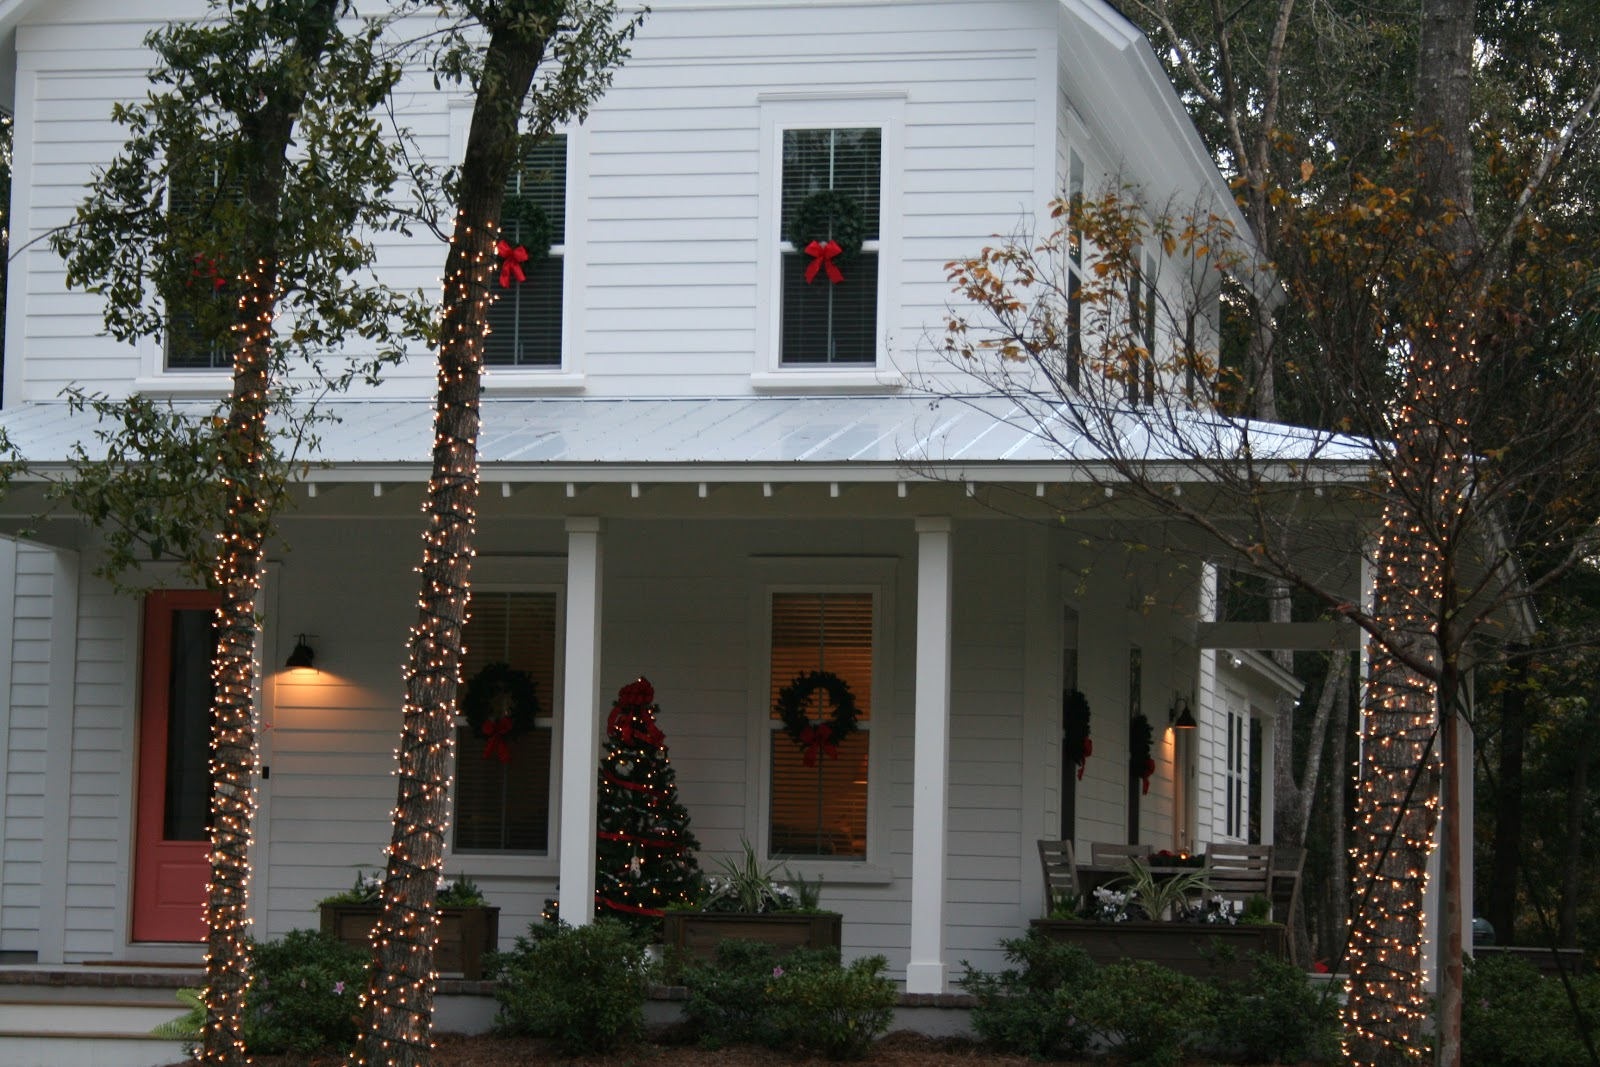 and here is what the house looks like at night simple classic cottage outdoor christmas decorations - Classic Outdoor Christmas Decorations